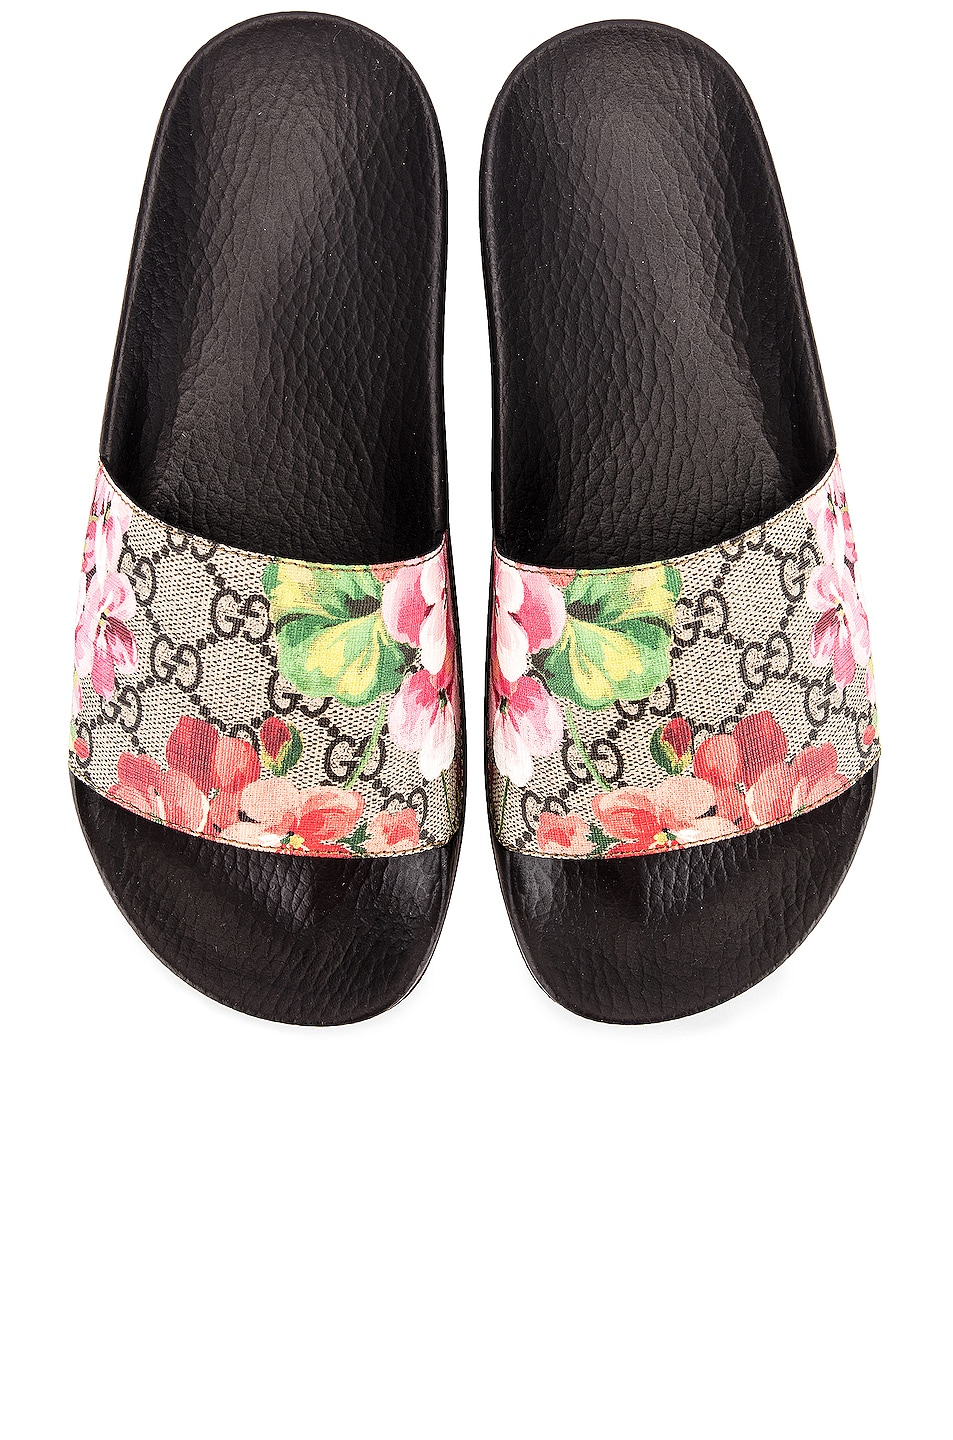 Image 1 of Gucci Pursuit GG Supreme Flora Slides in Beige Ebony & Multicolor